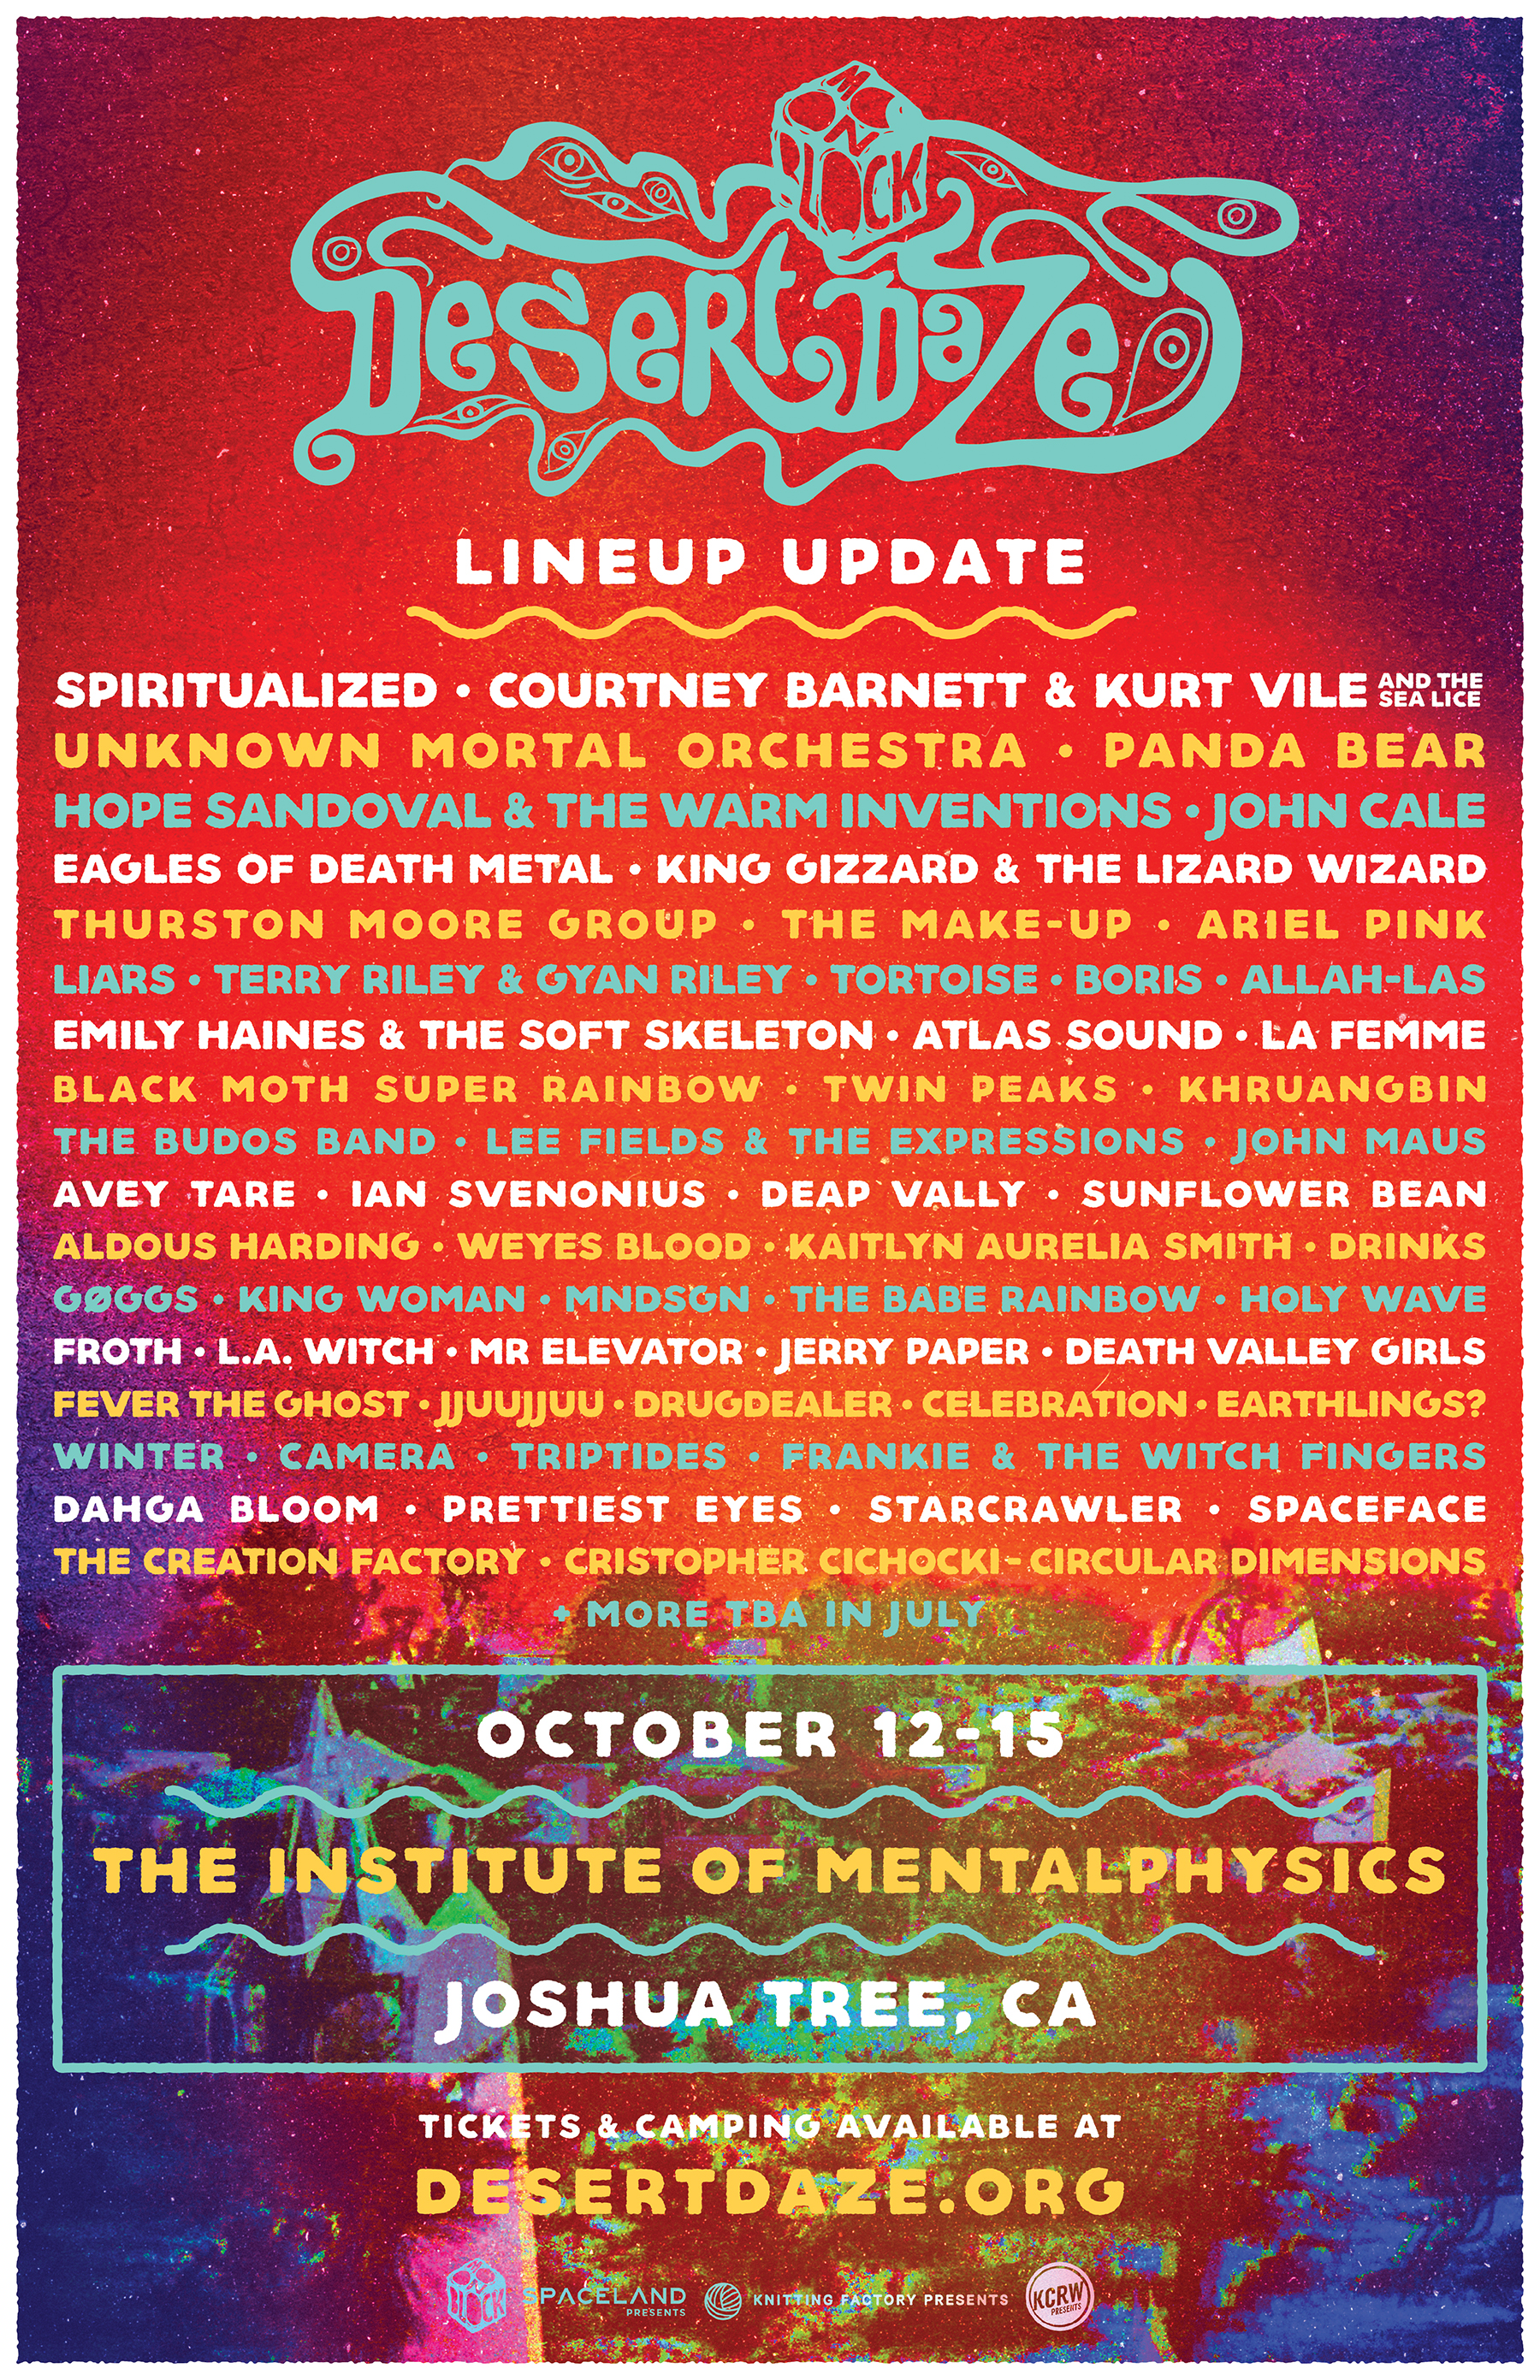 dd 17 lineup update tall fb web Desert Daze reveals 2017 lineup: Spiritualized, Courtney Barnett & Kurt Vile, John Cale among highlights